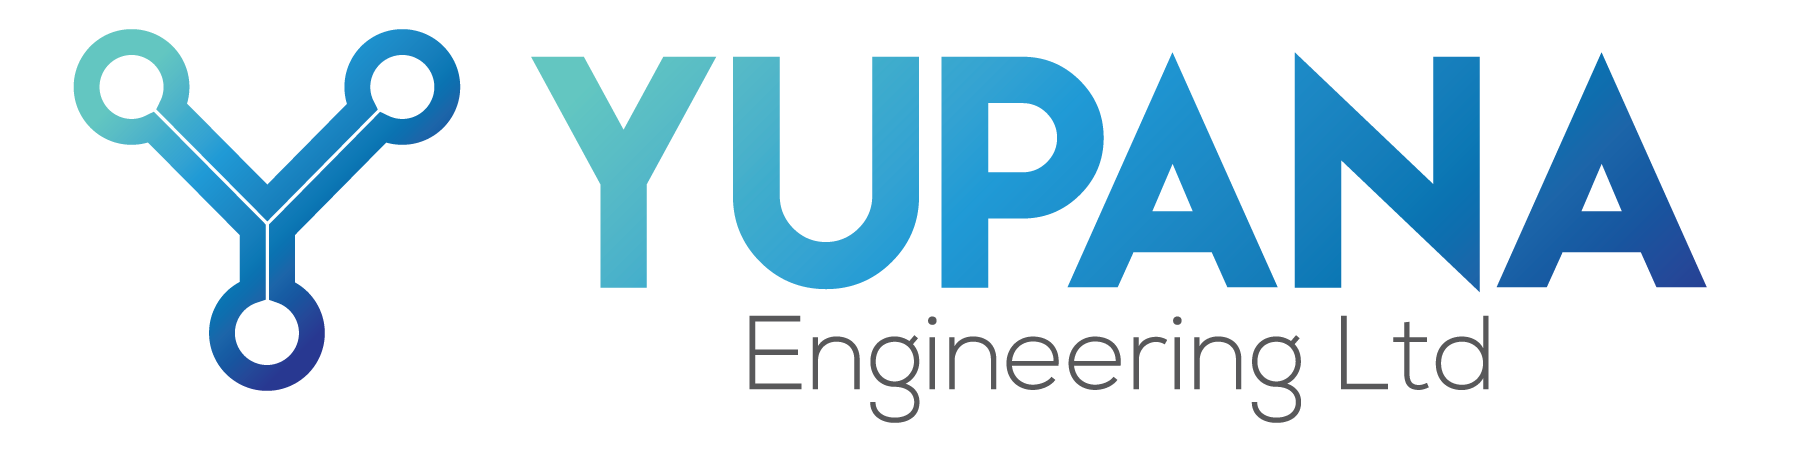 Yupana Engineering Ltd